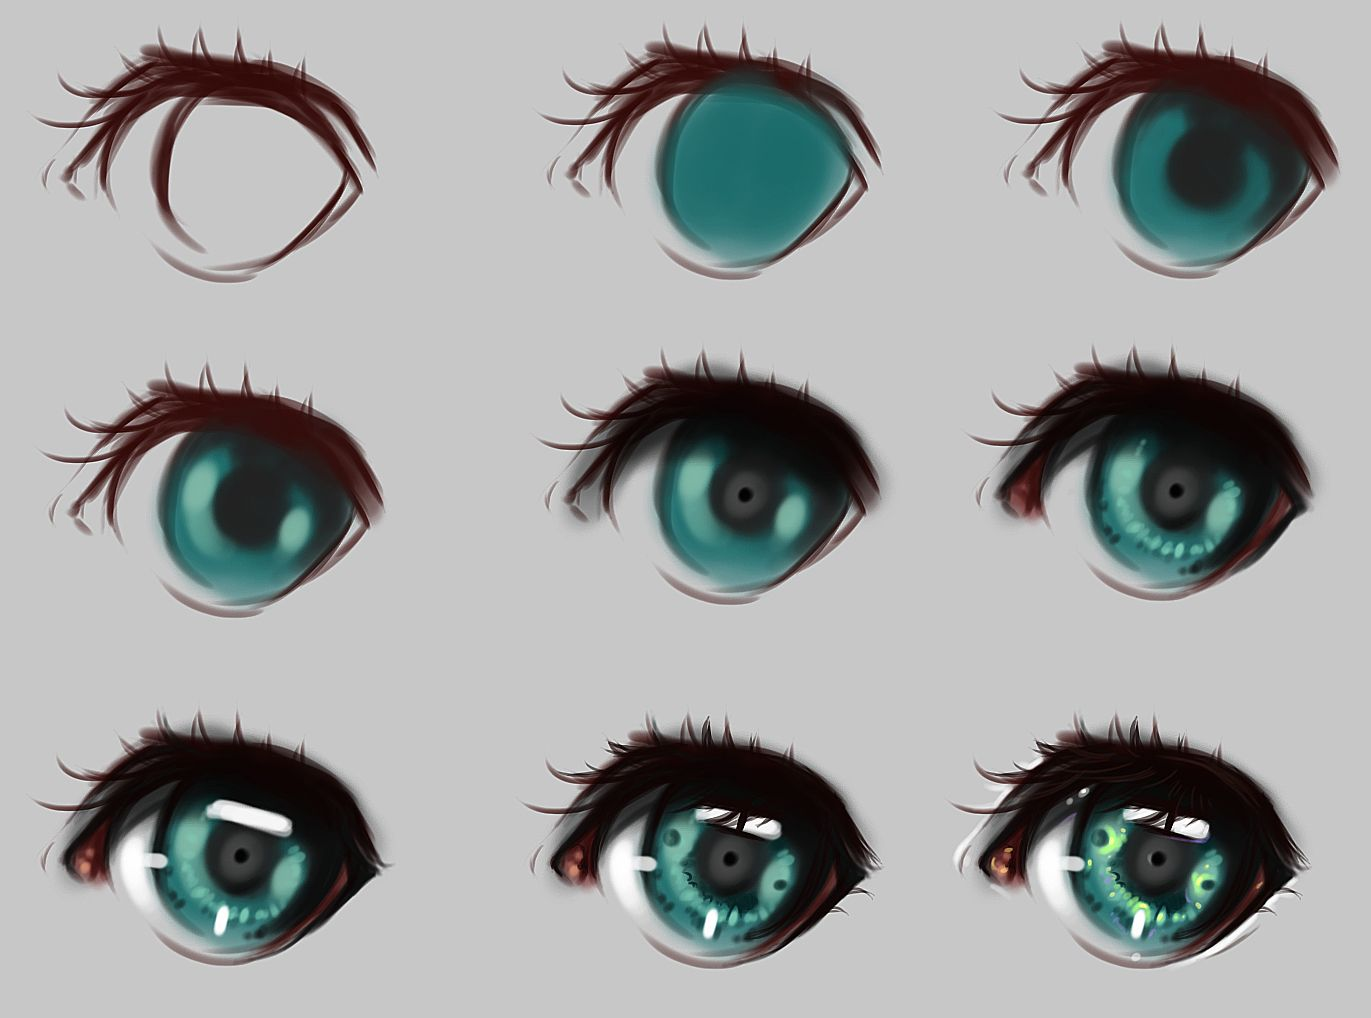 Eyes Step By Step By Ryky On Deviantart Art Tutorials Digital Art Tutorial Art Techniques